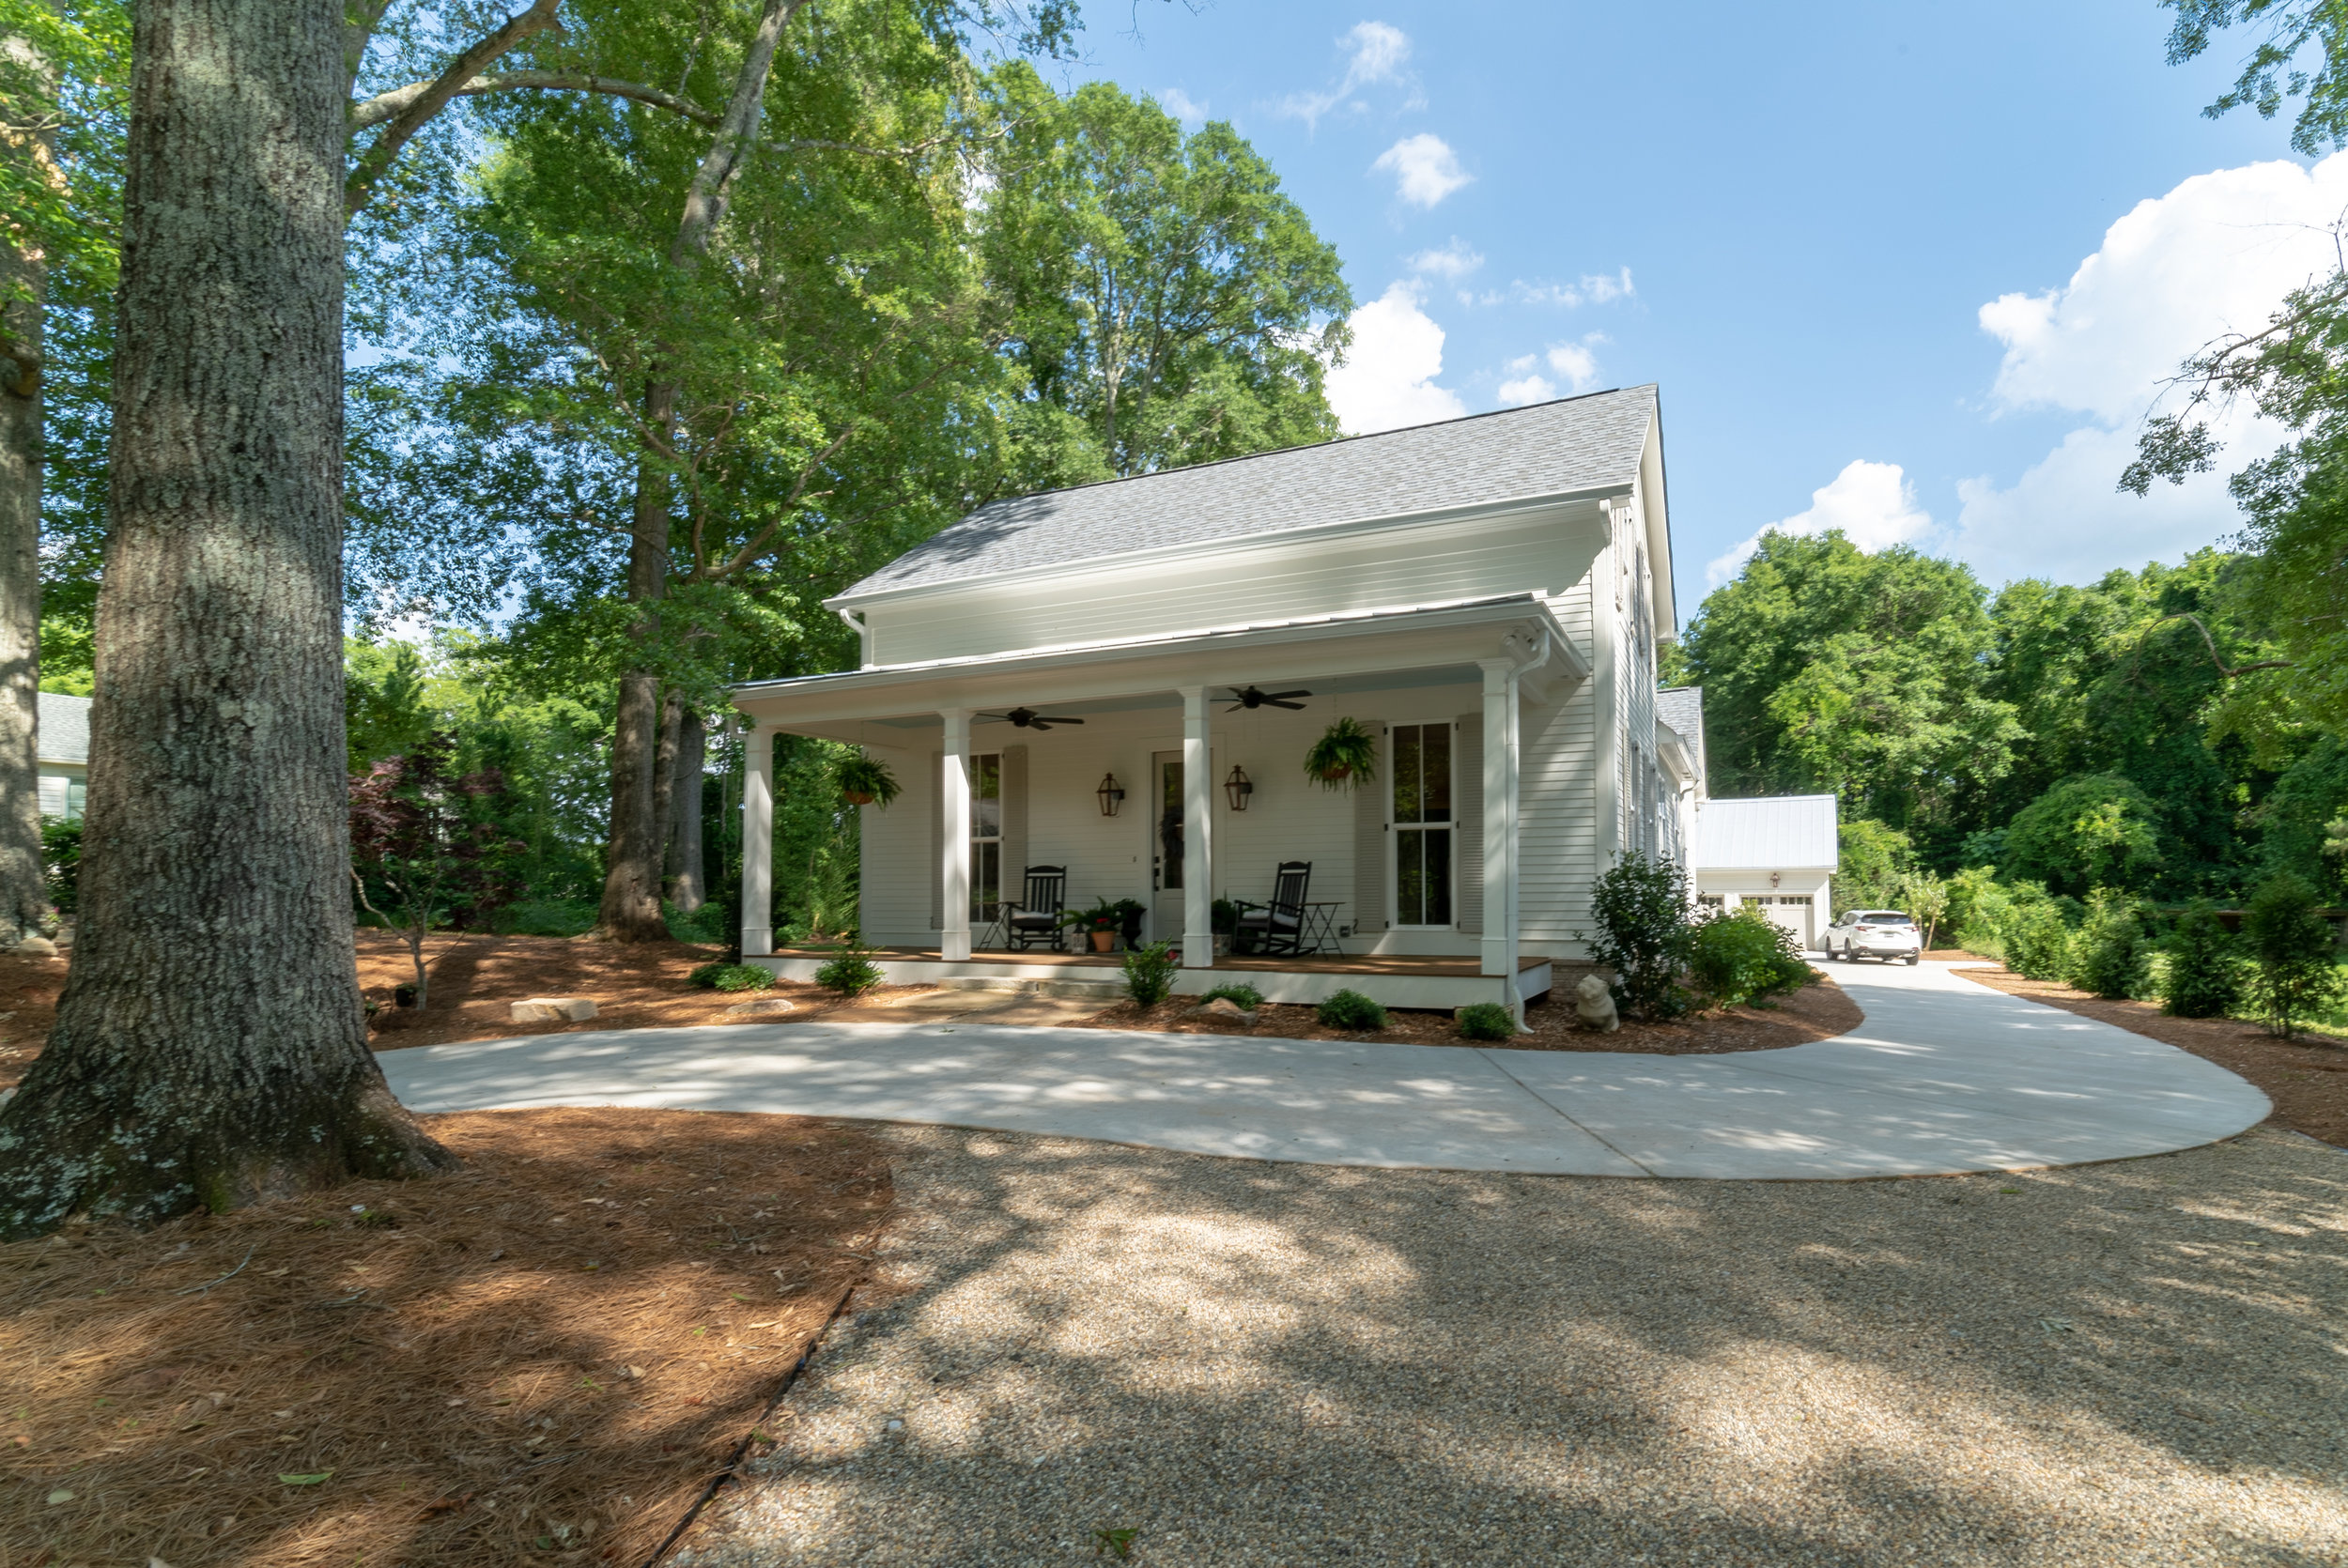 Senoia Palmetto Cottage